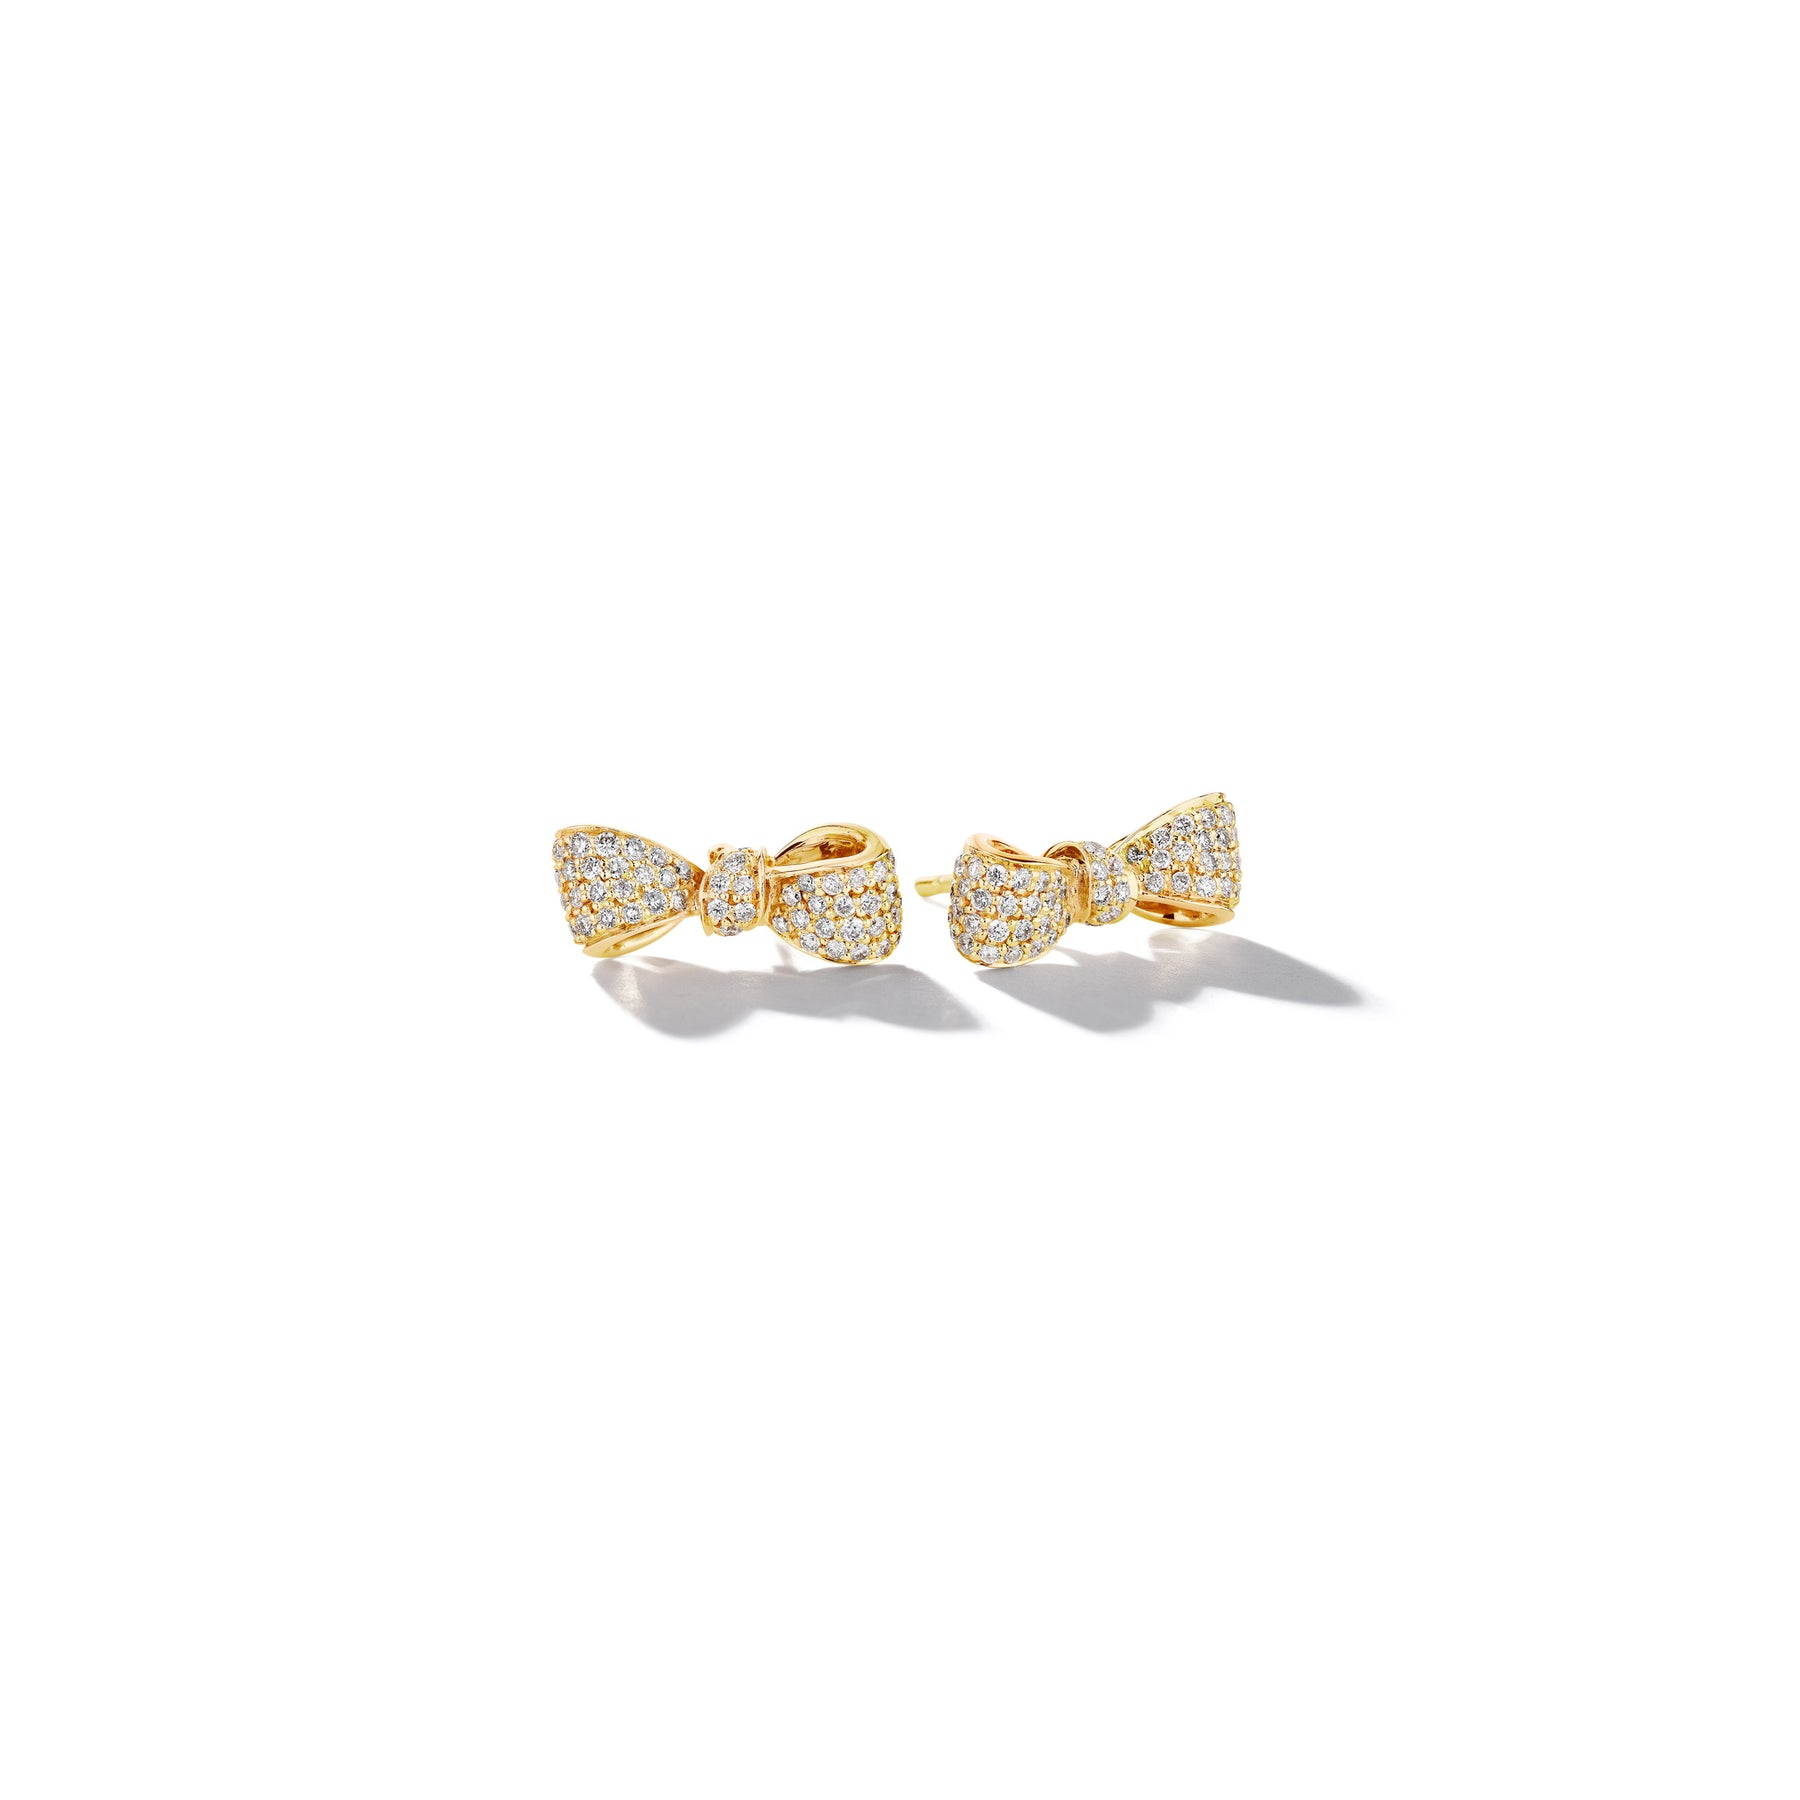 Mimi-So-Bow-Diamond-Earrings-Mini_18k Yellow Gold